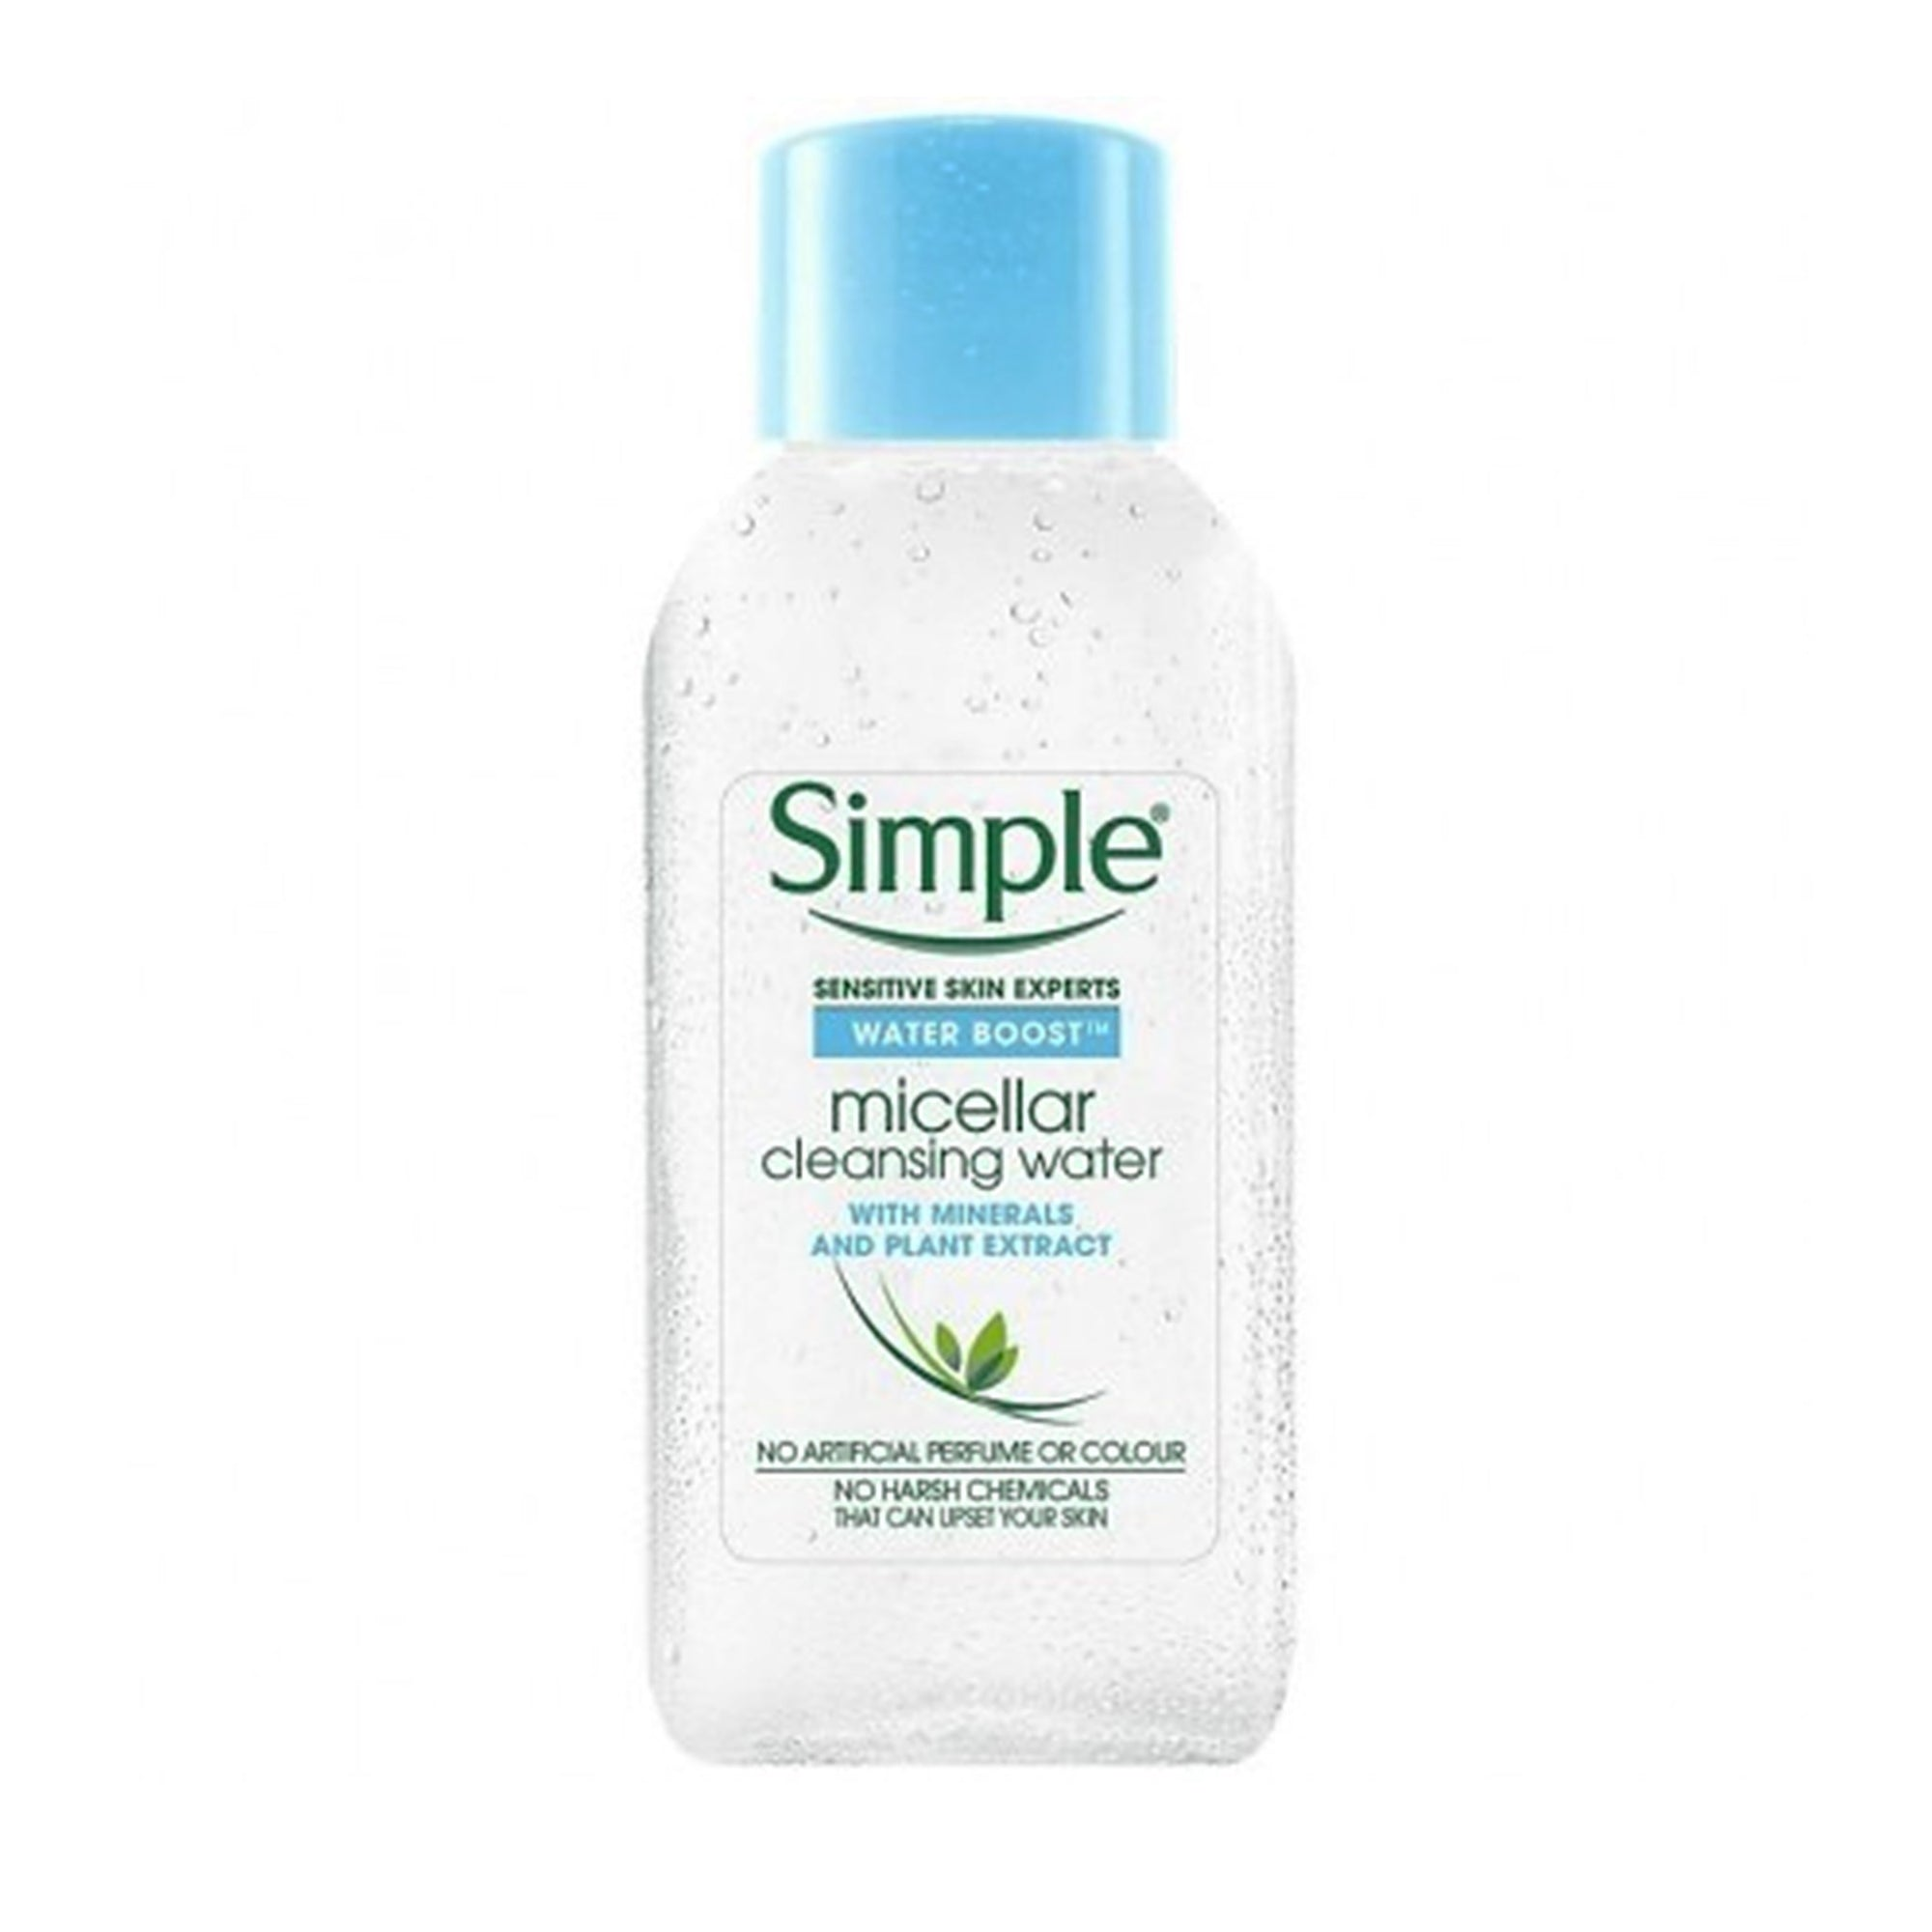 Simple Boost Micellar Water 50Ml